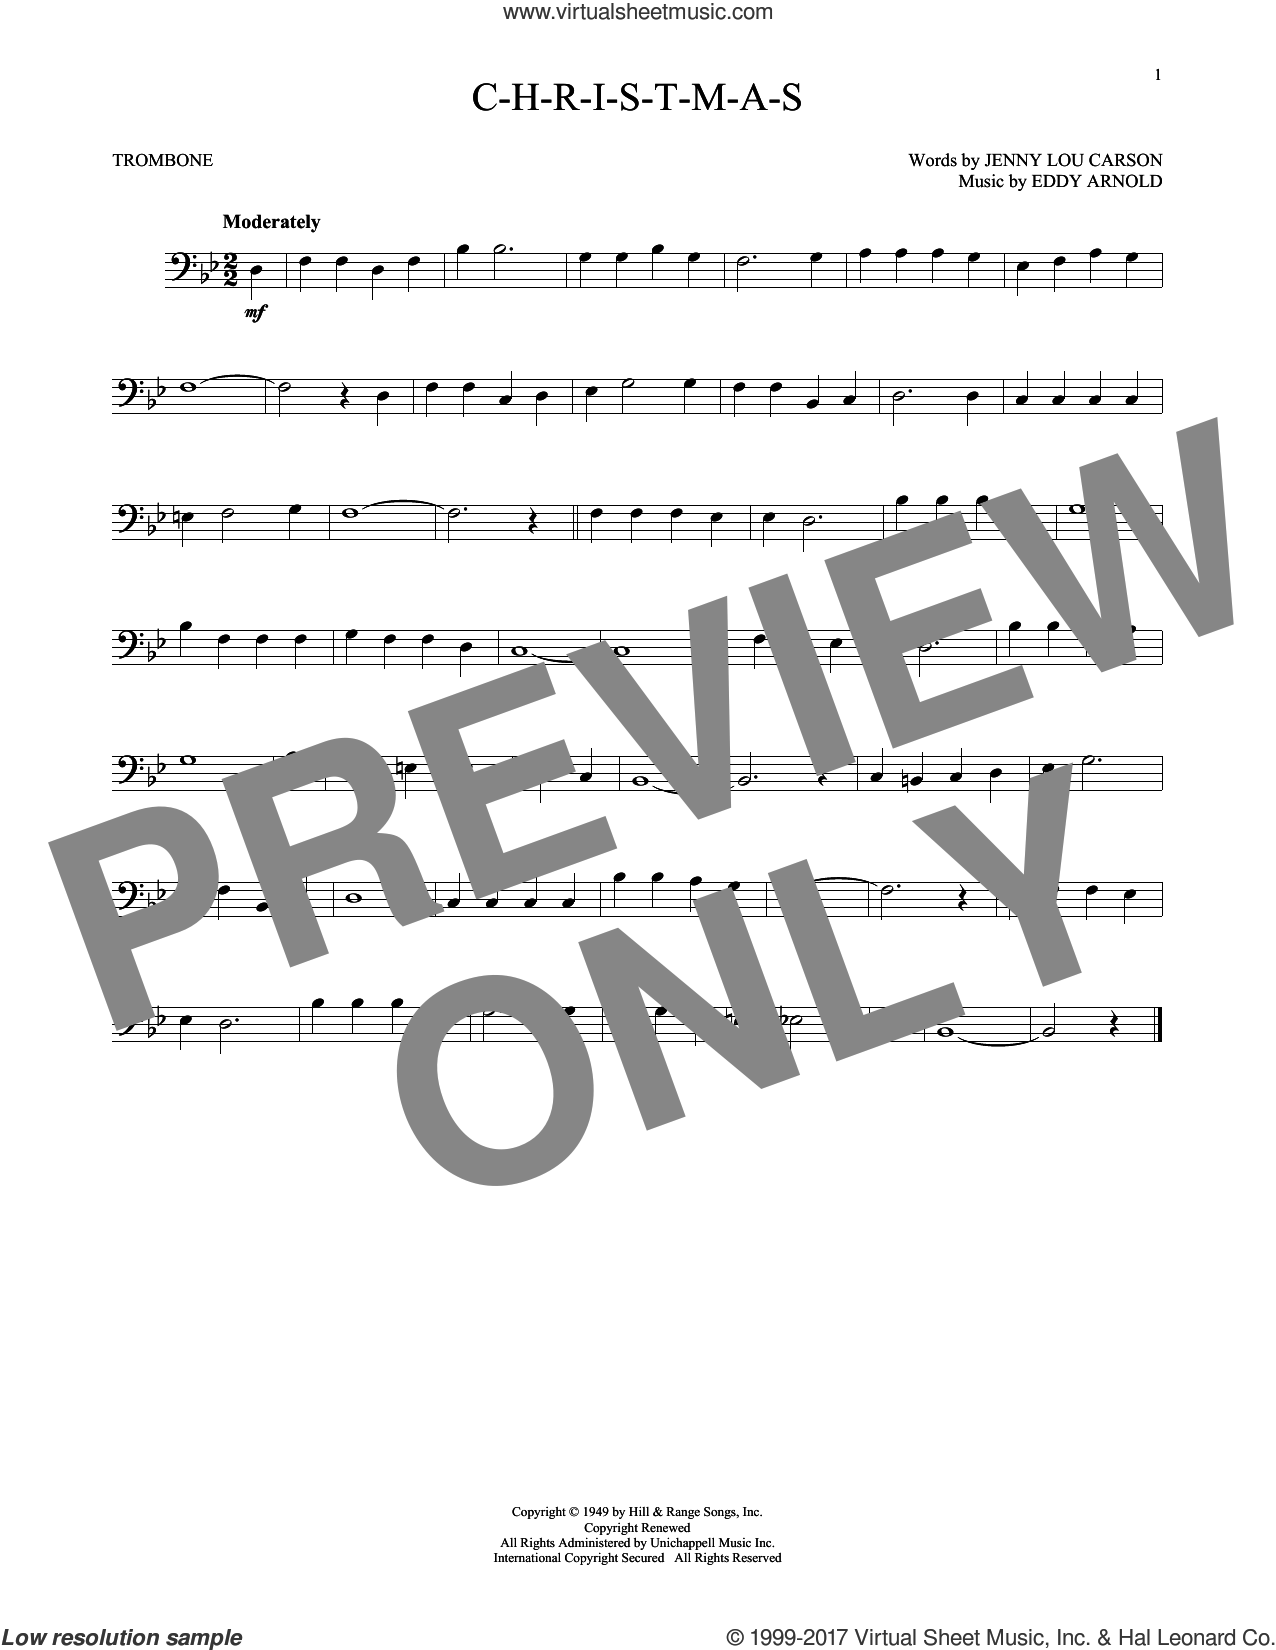 C-H-R-I-S-T-M-A-S sheet music for trombone solo by Eddy Arnold and Jenny Lou Carson, intermediate skill level